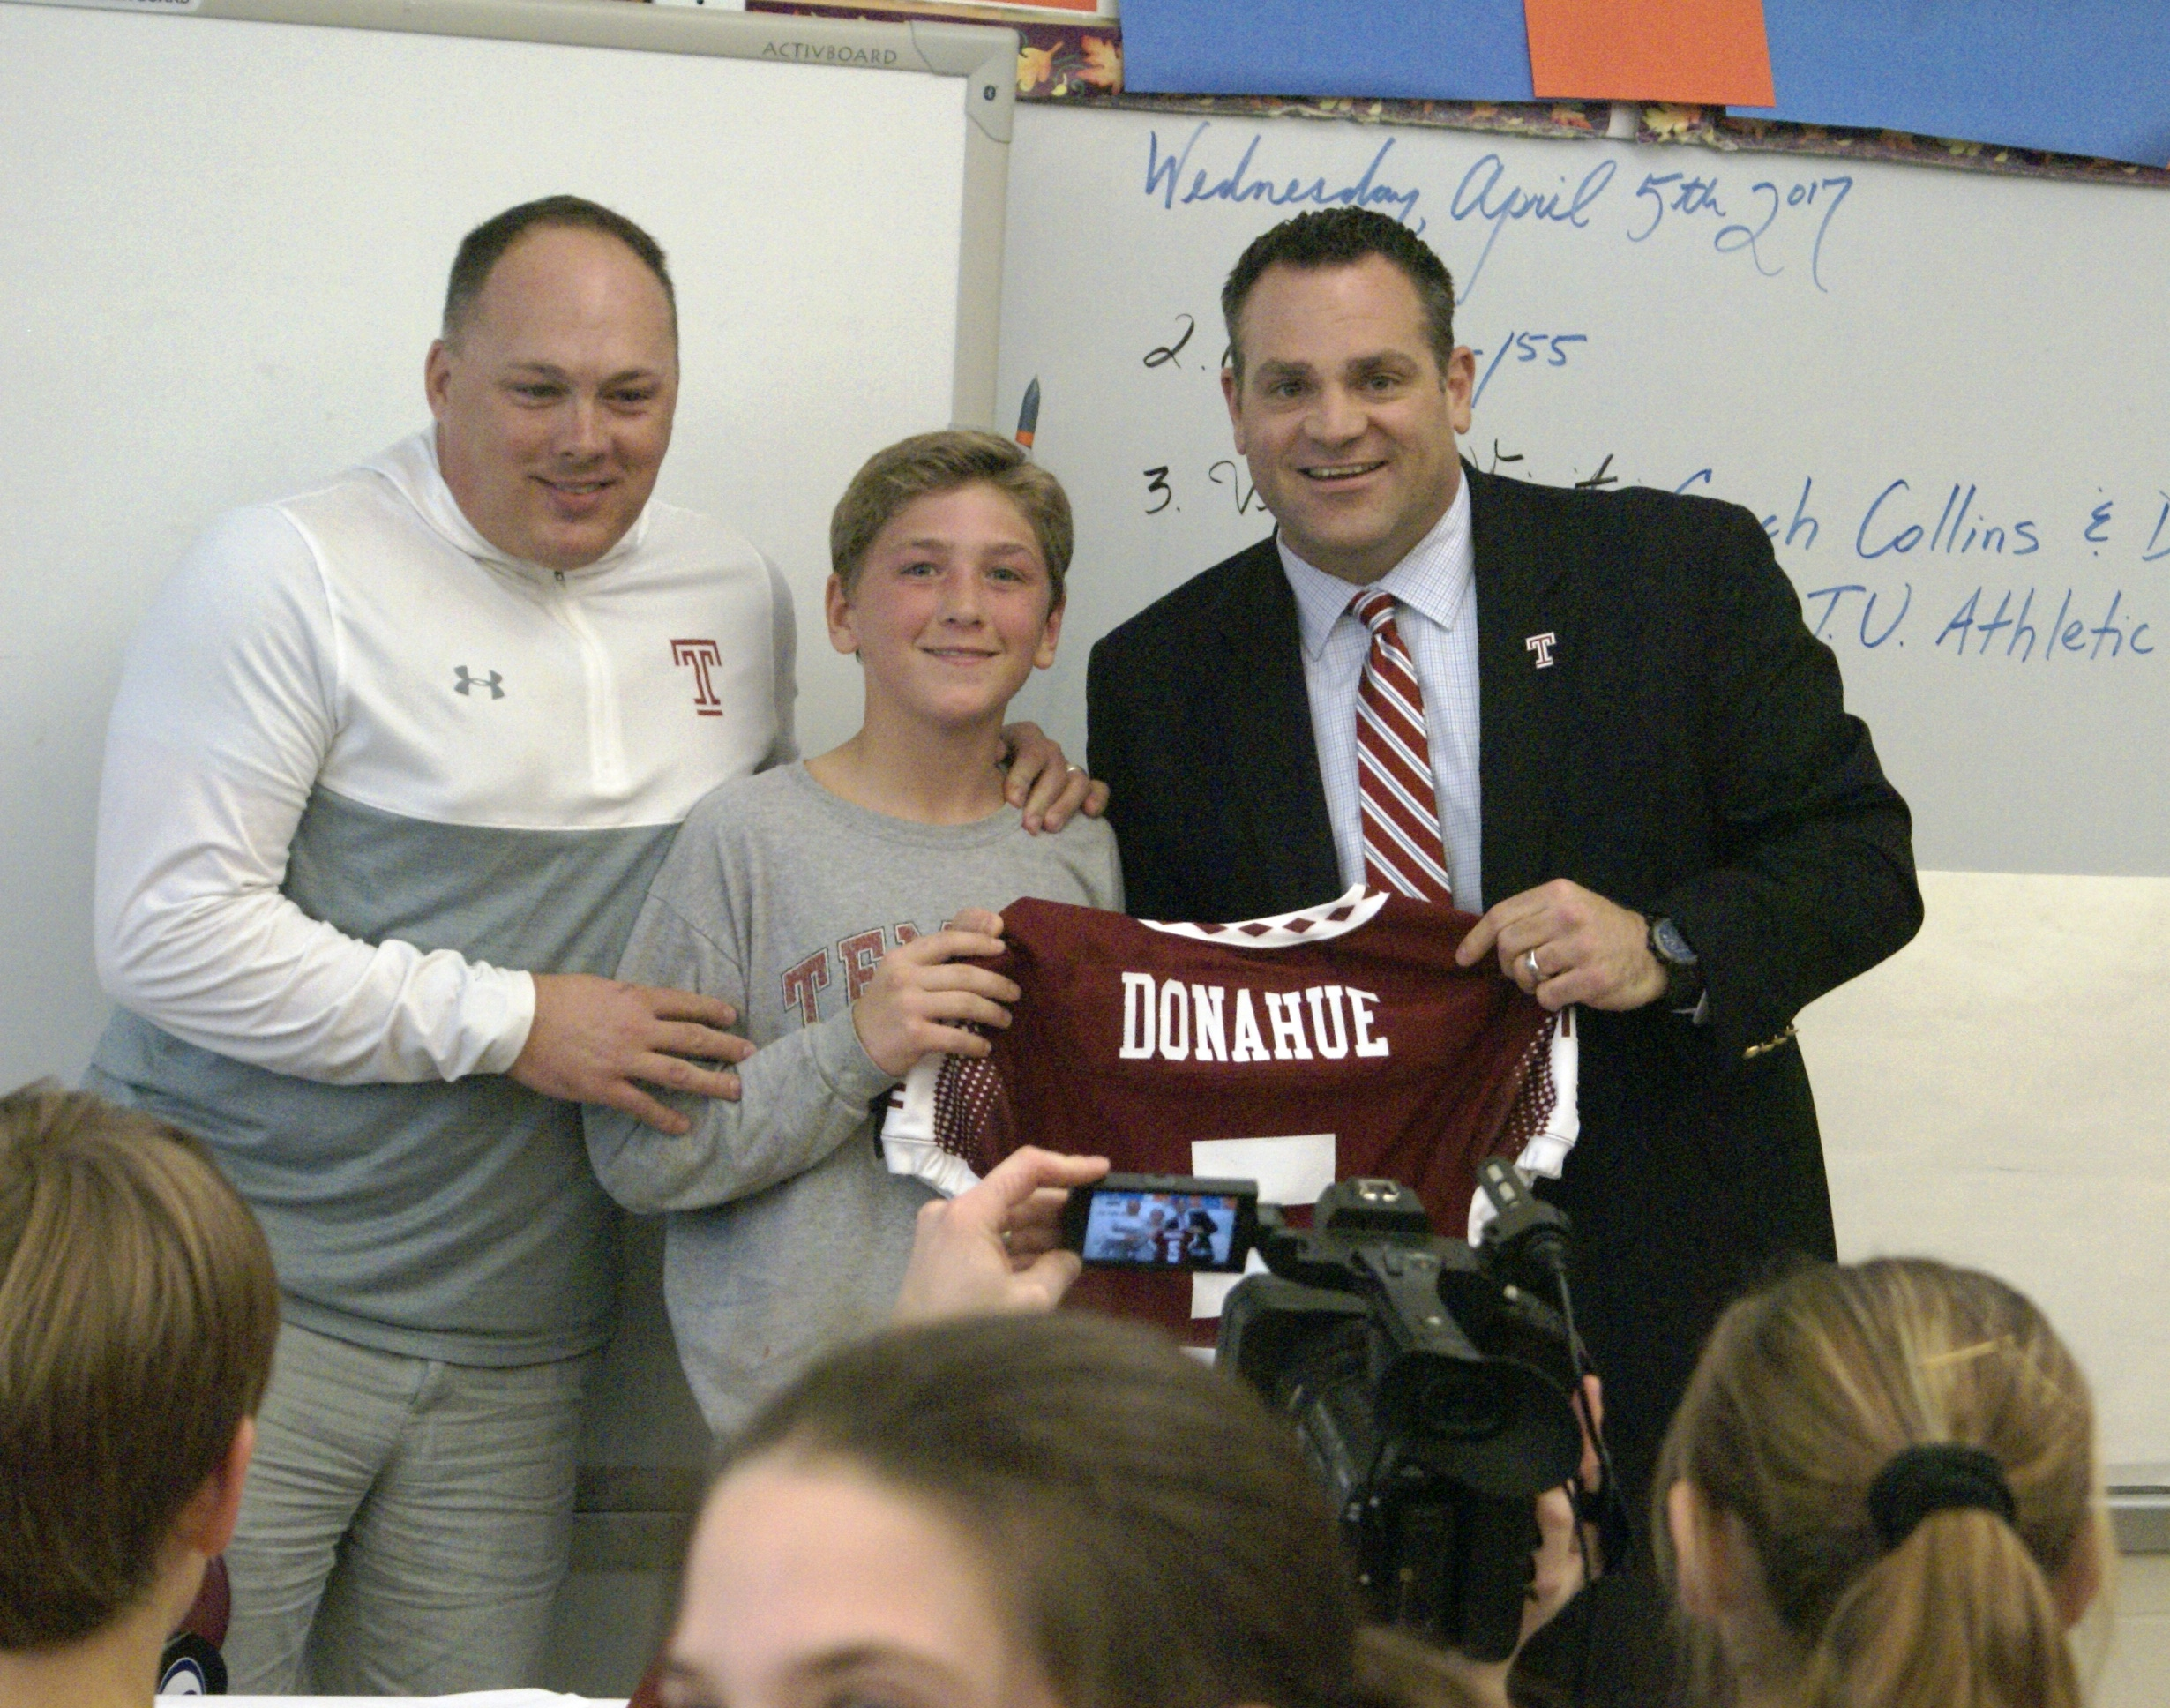 temple football coach and athletic director copper beech as brian was presented a personalized temple football jersey and posed it the coach and athletic director and his homeroom teacher